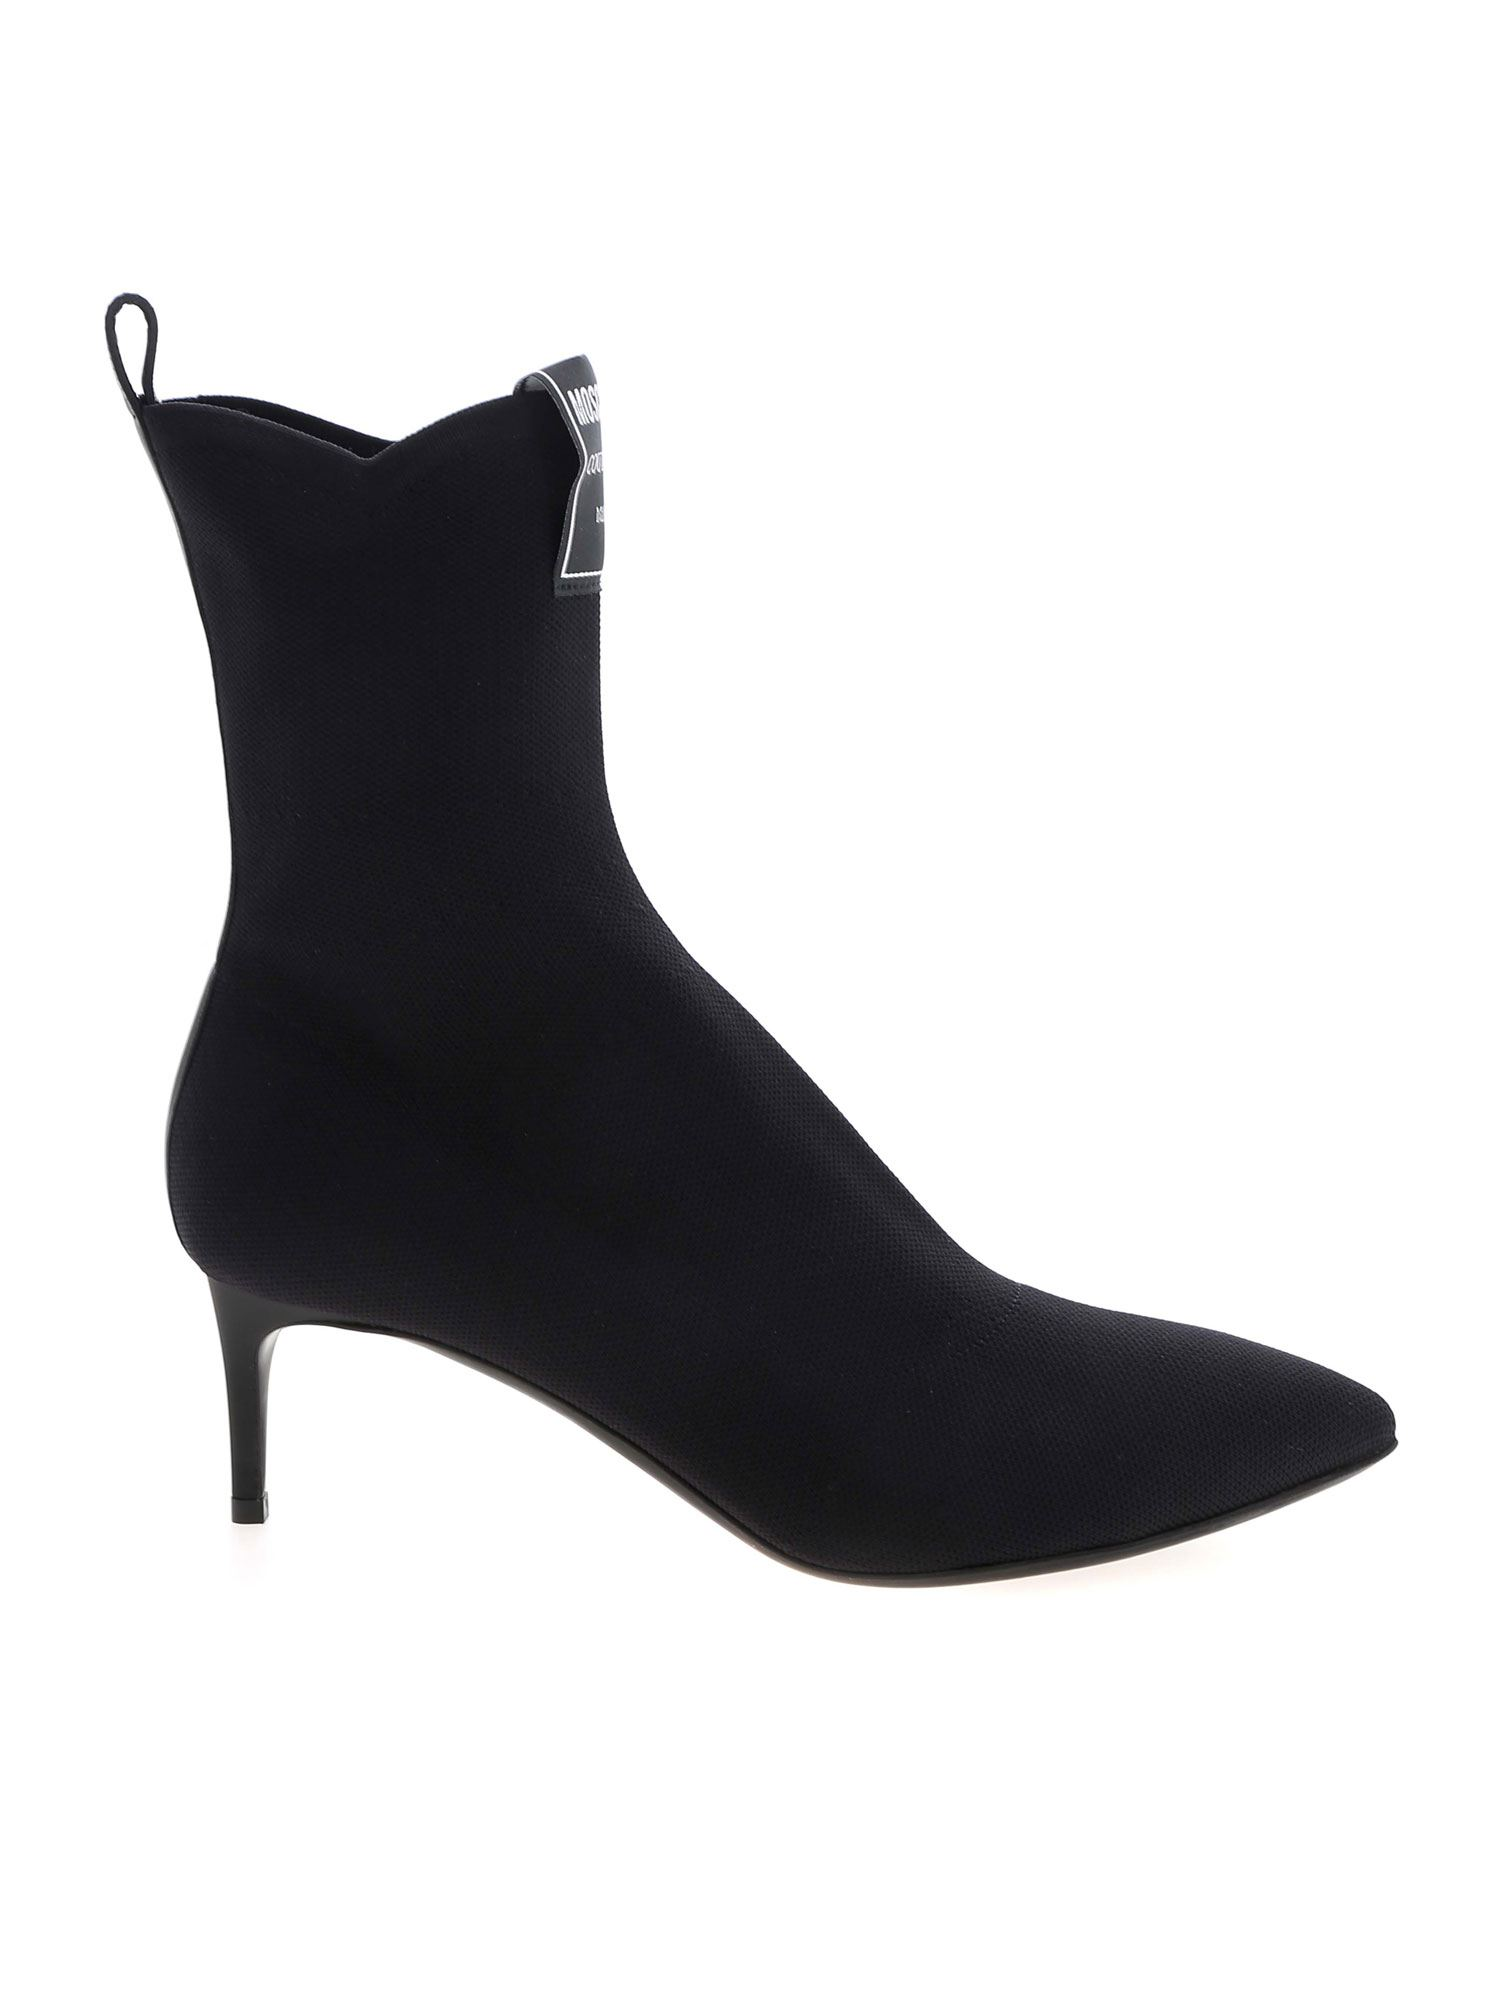 Moschino LOGO LABEL POINTED ANKLE BOOTS IN BLACK